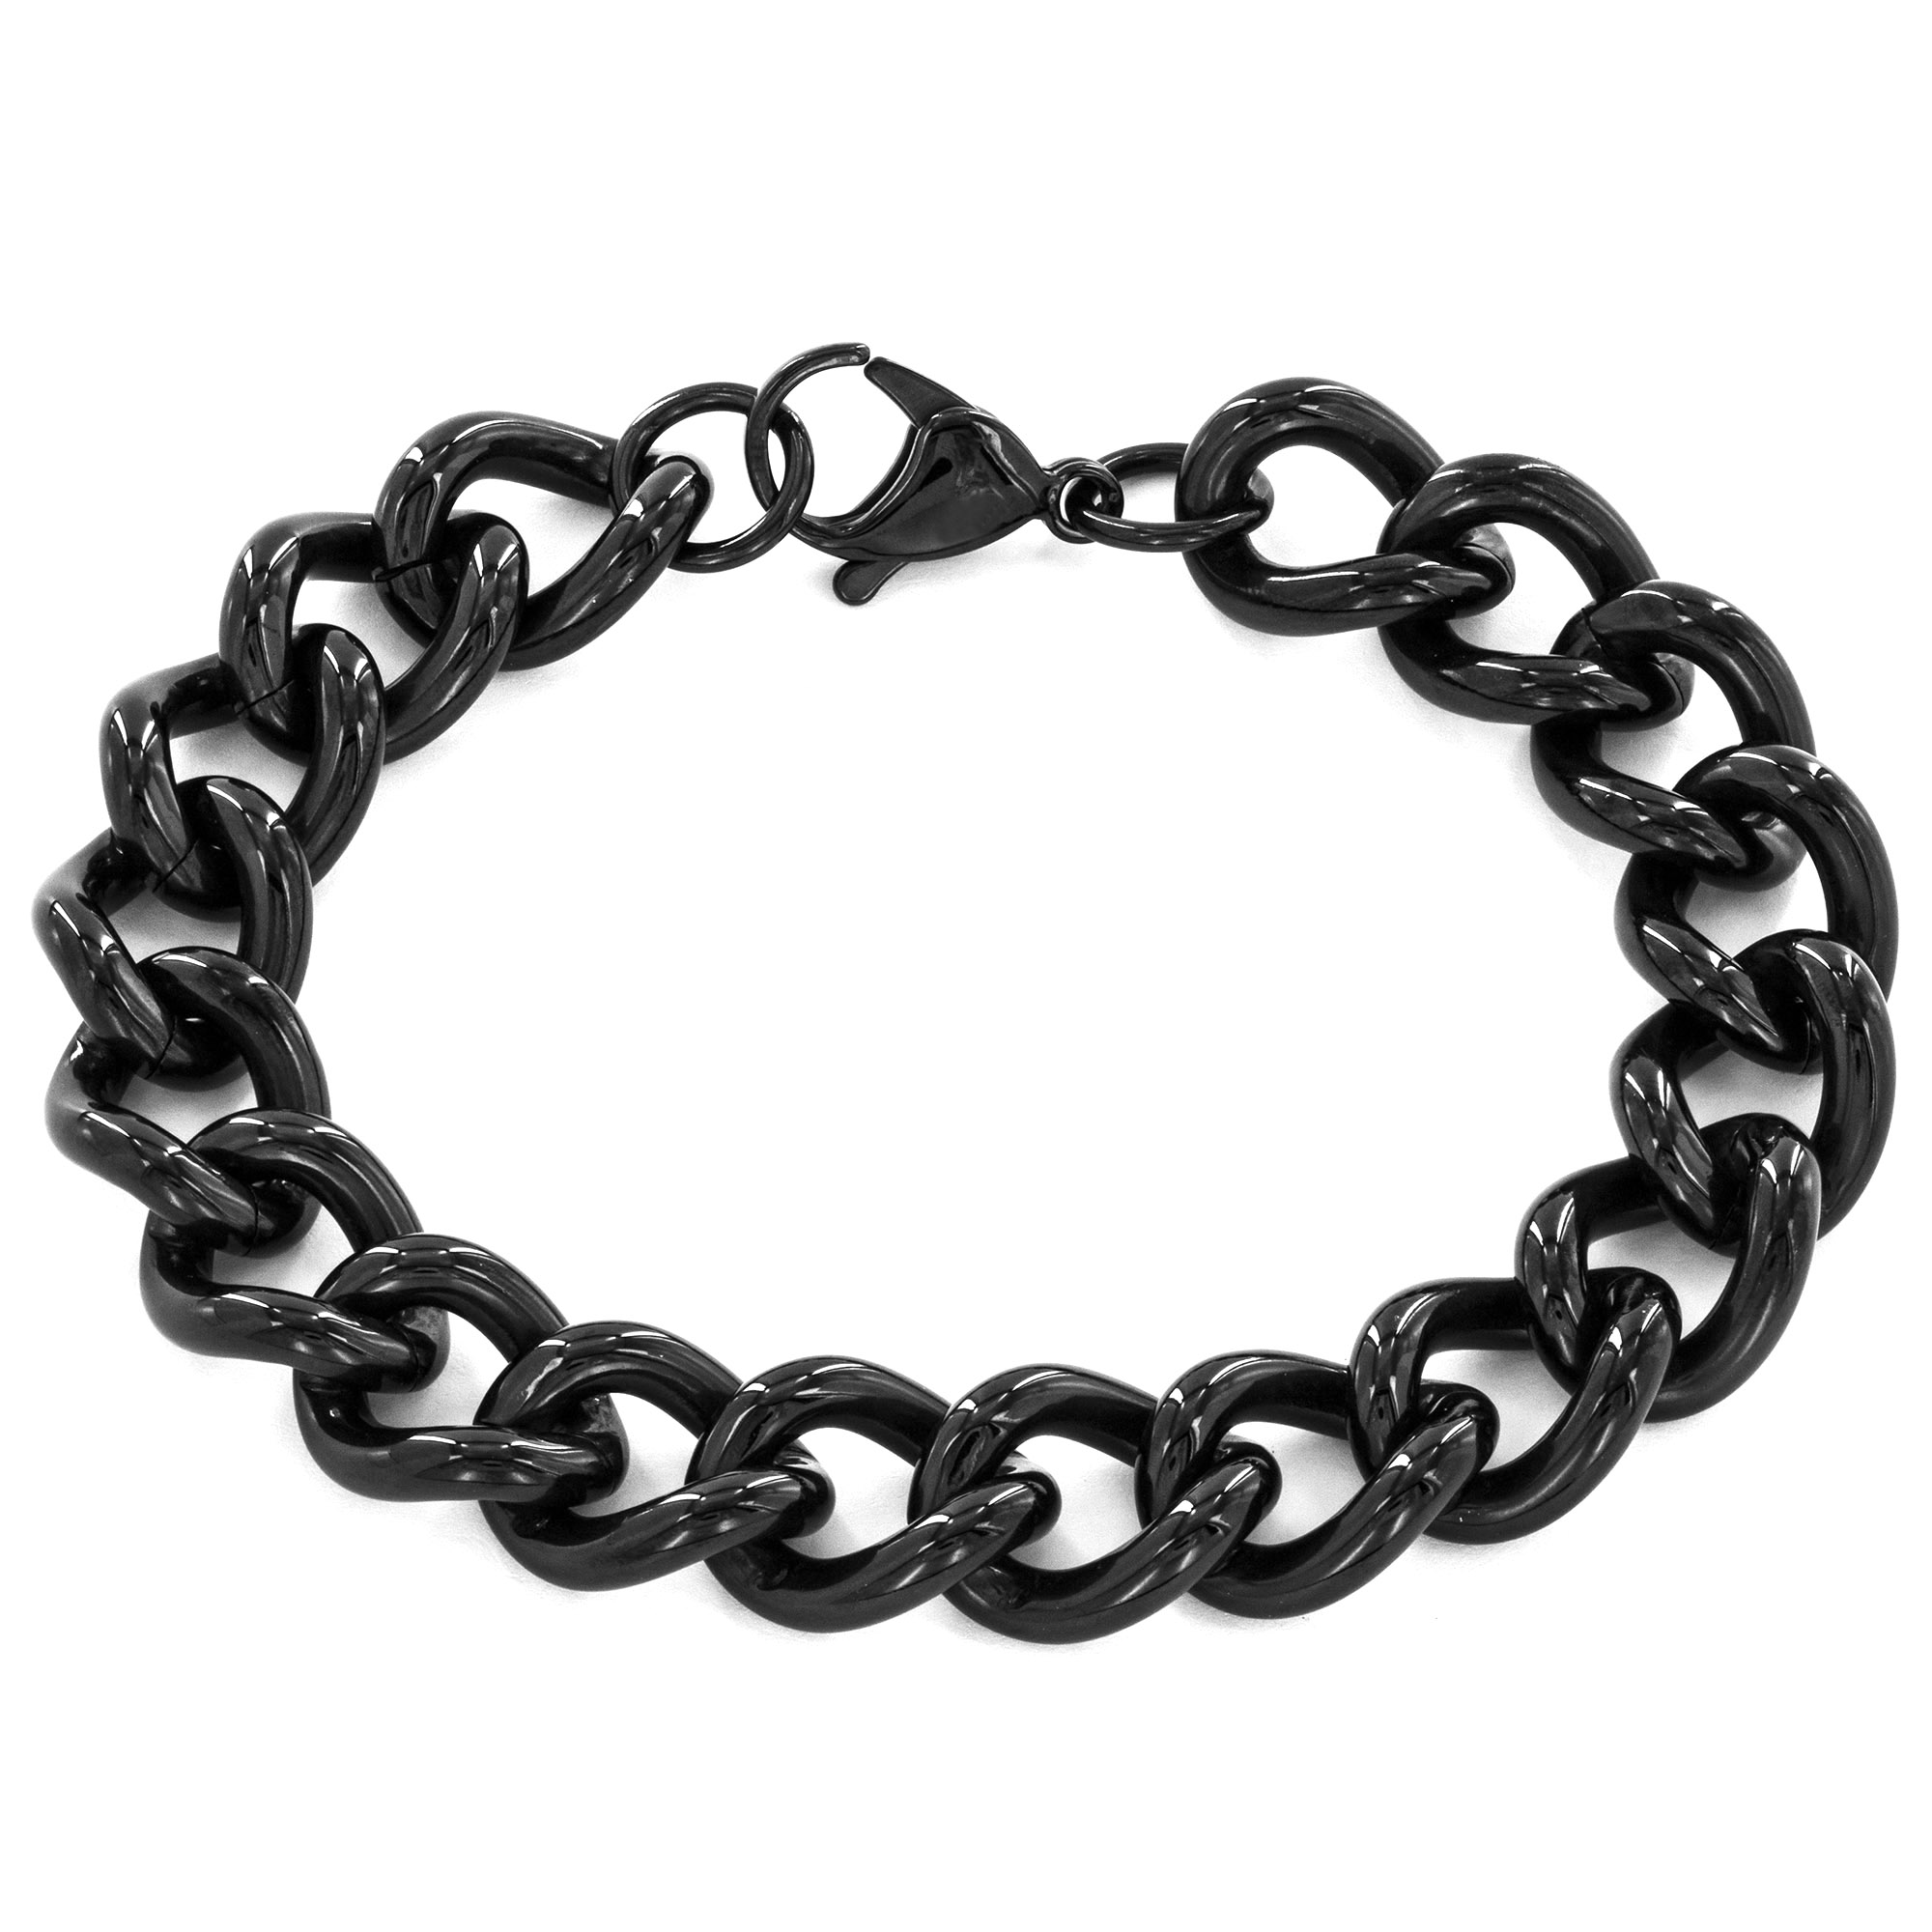 Crucible Black Plated Stainless Steel Classic Curb Link Bracelet